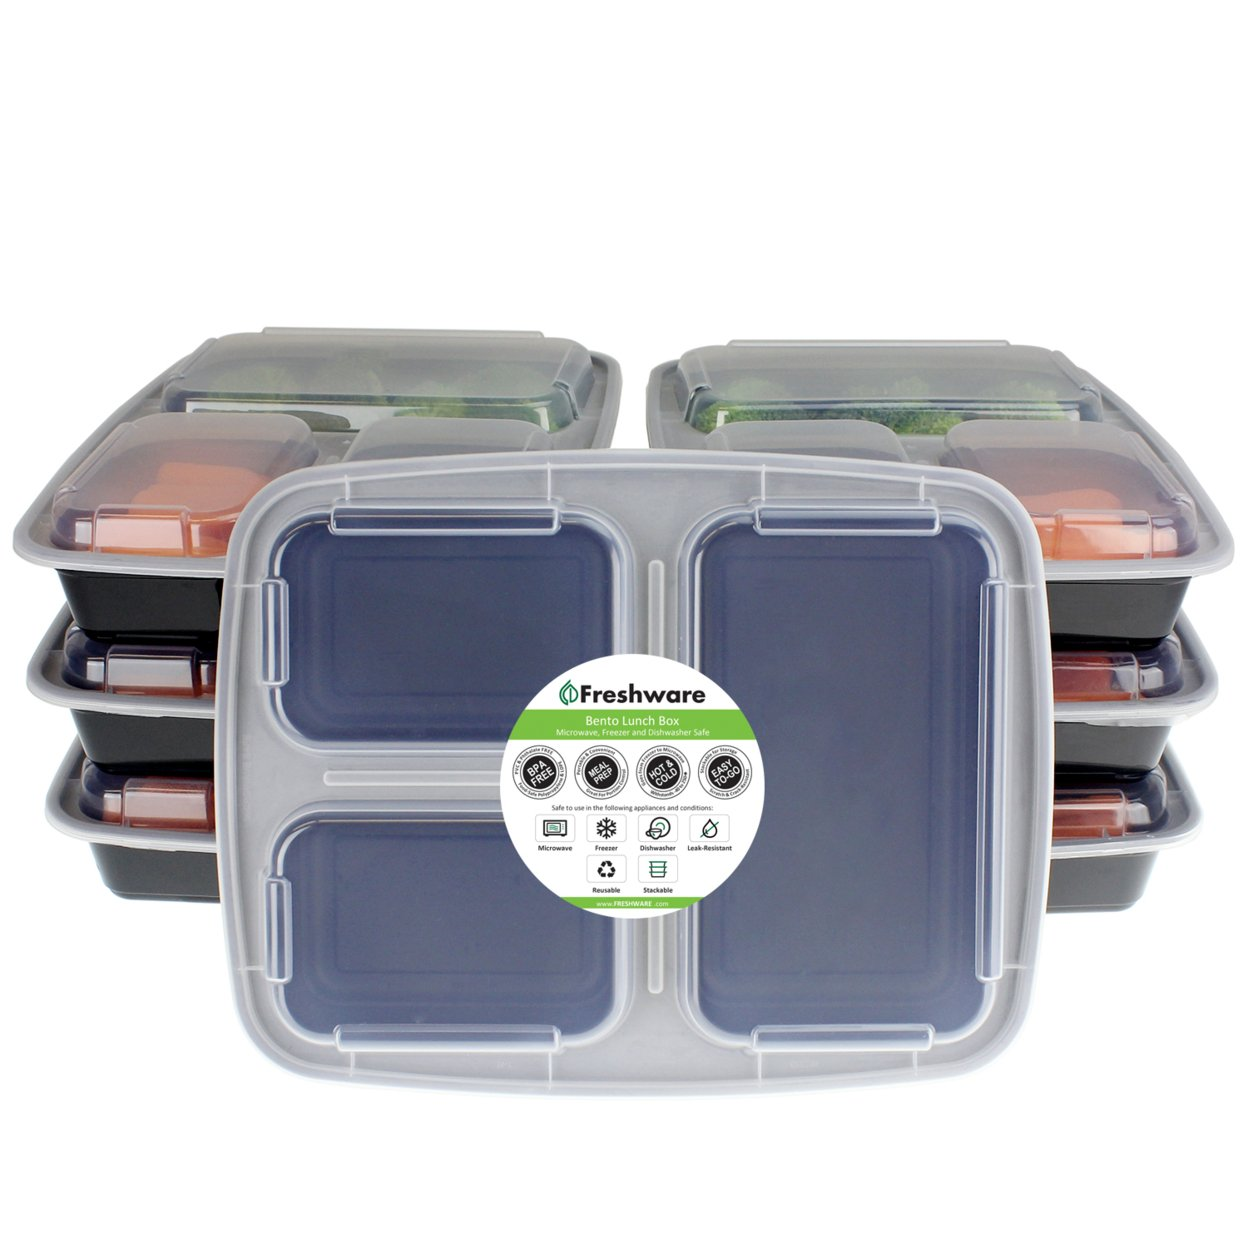 Freshware 7-pack 3 Compartment Bento Lunch Boxes With Lids Meal Prep, Portion Control, 21 Day Fix & Food Storage Containers (32oz)